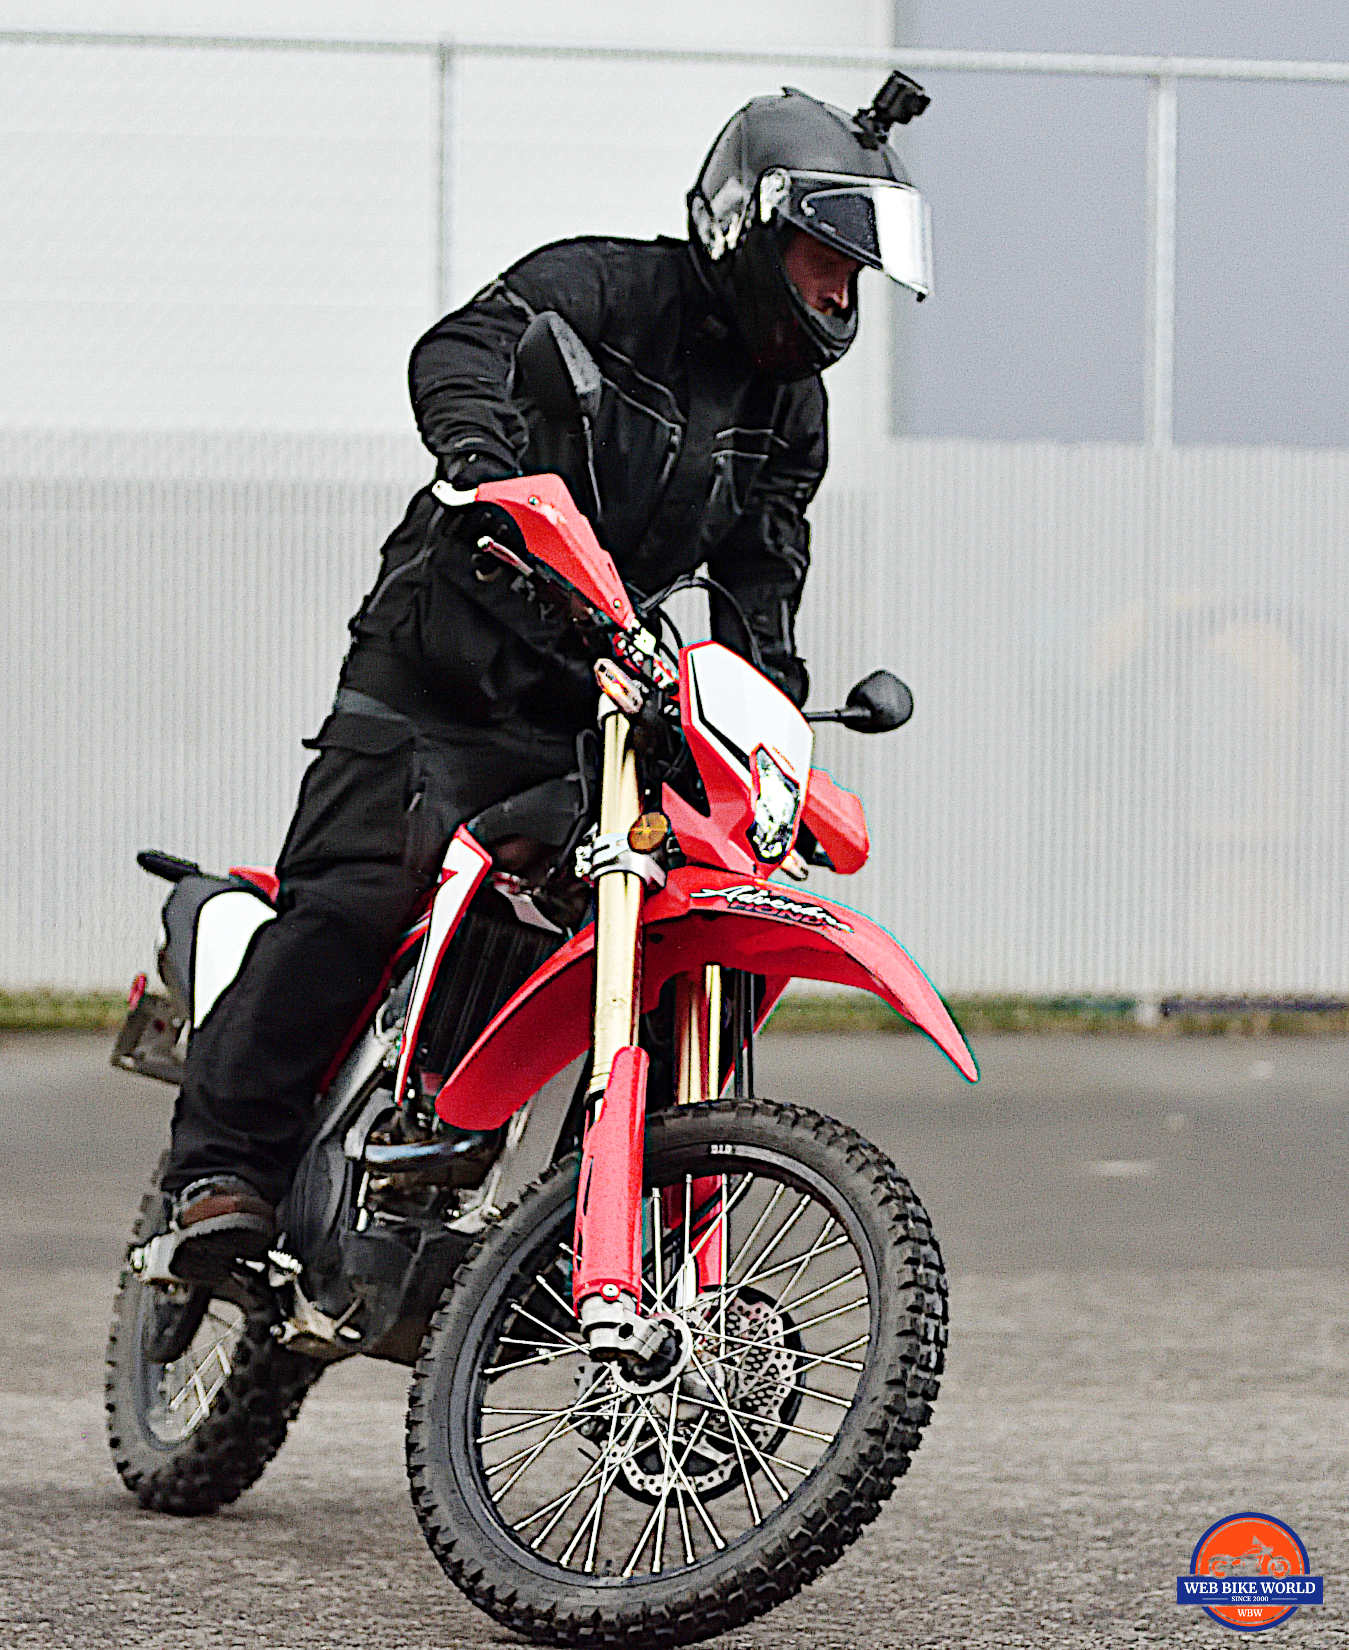 Me on a 2019 Honda CRF450L